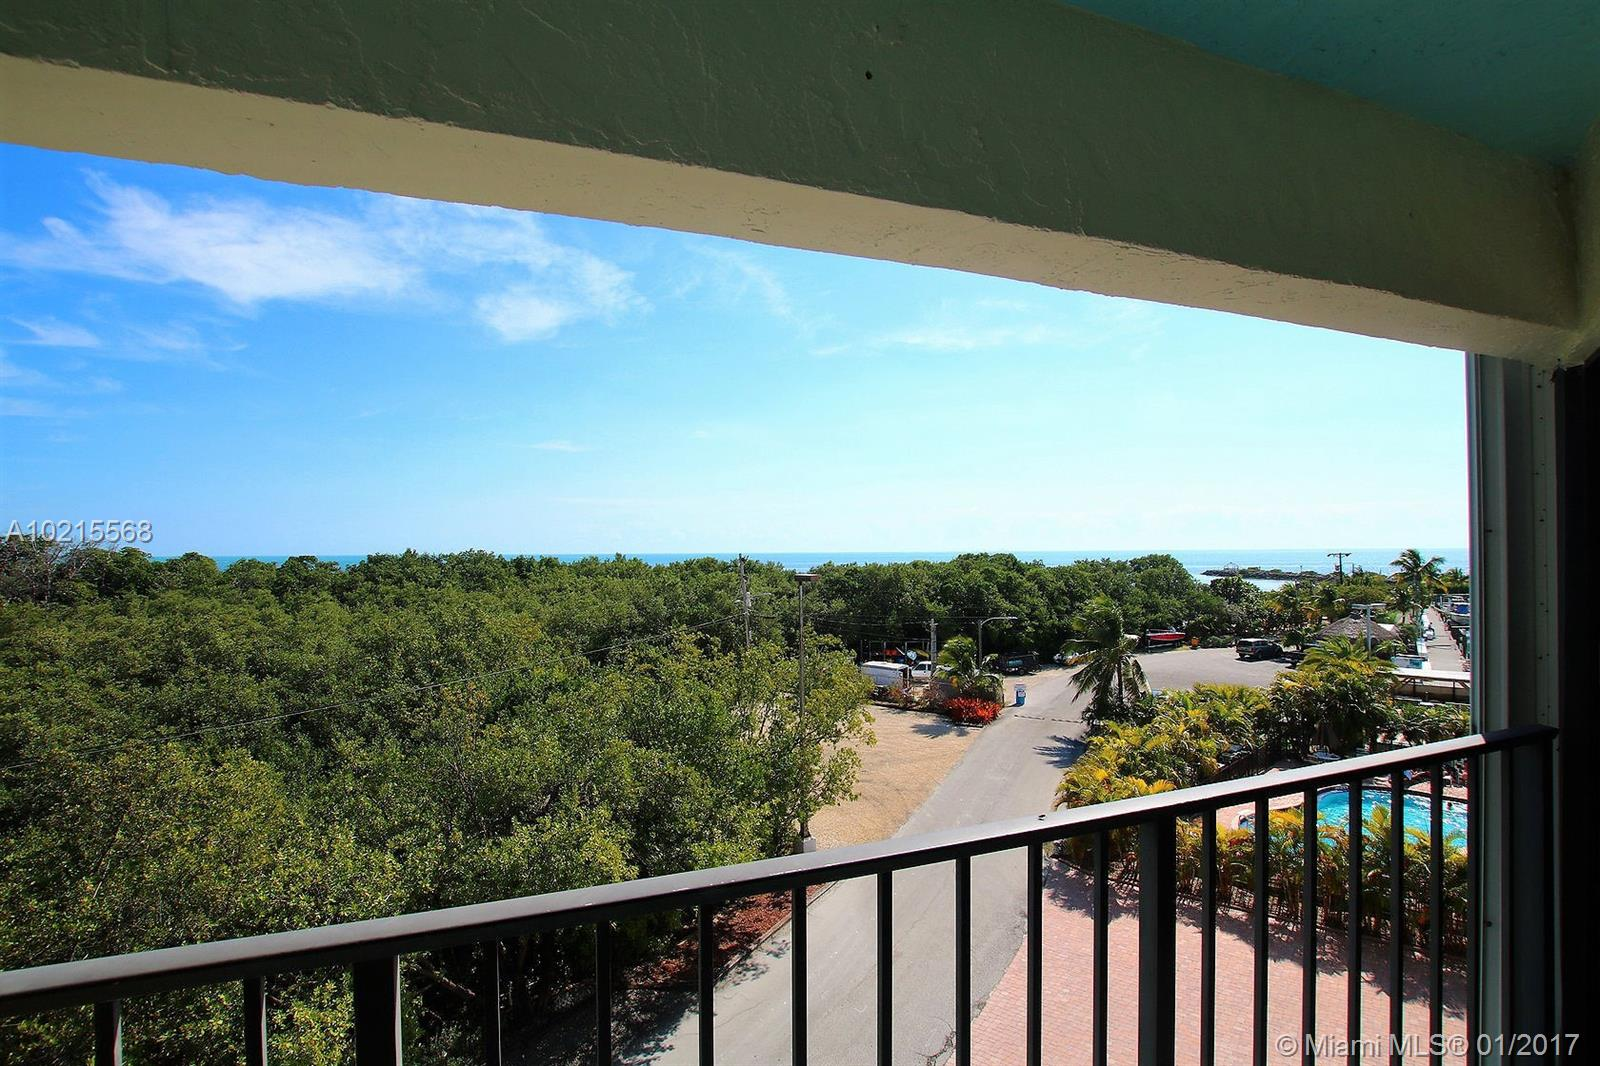 1530 Ocean bay dr-410 other-city---keys/islands/caribbean--fl-33037-a10215568-Pic13